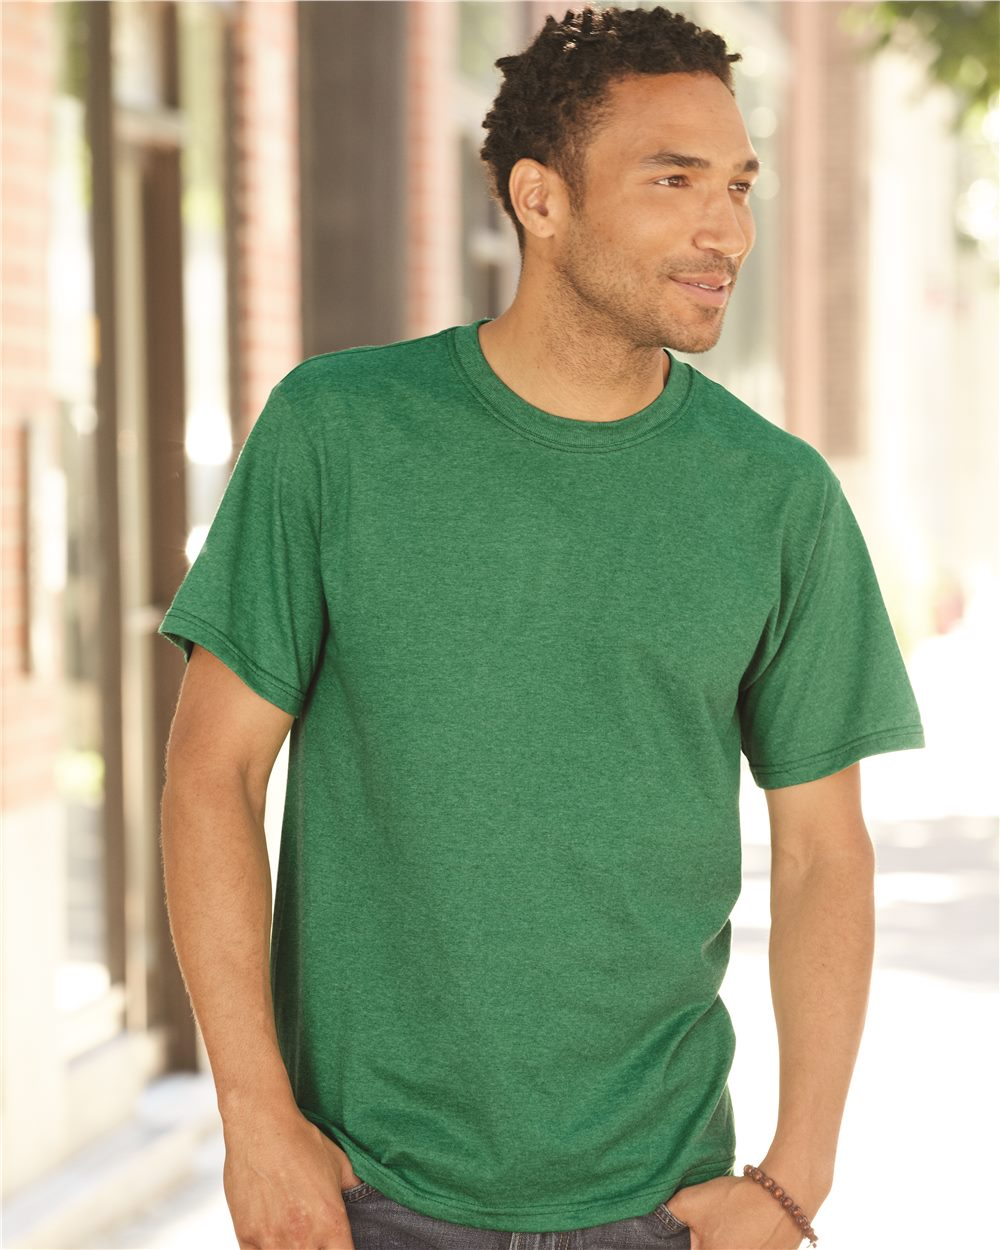 Fruit of the Loom 3930R Heavy Cotton T-Shirt